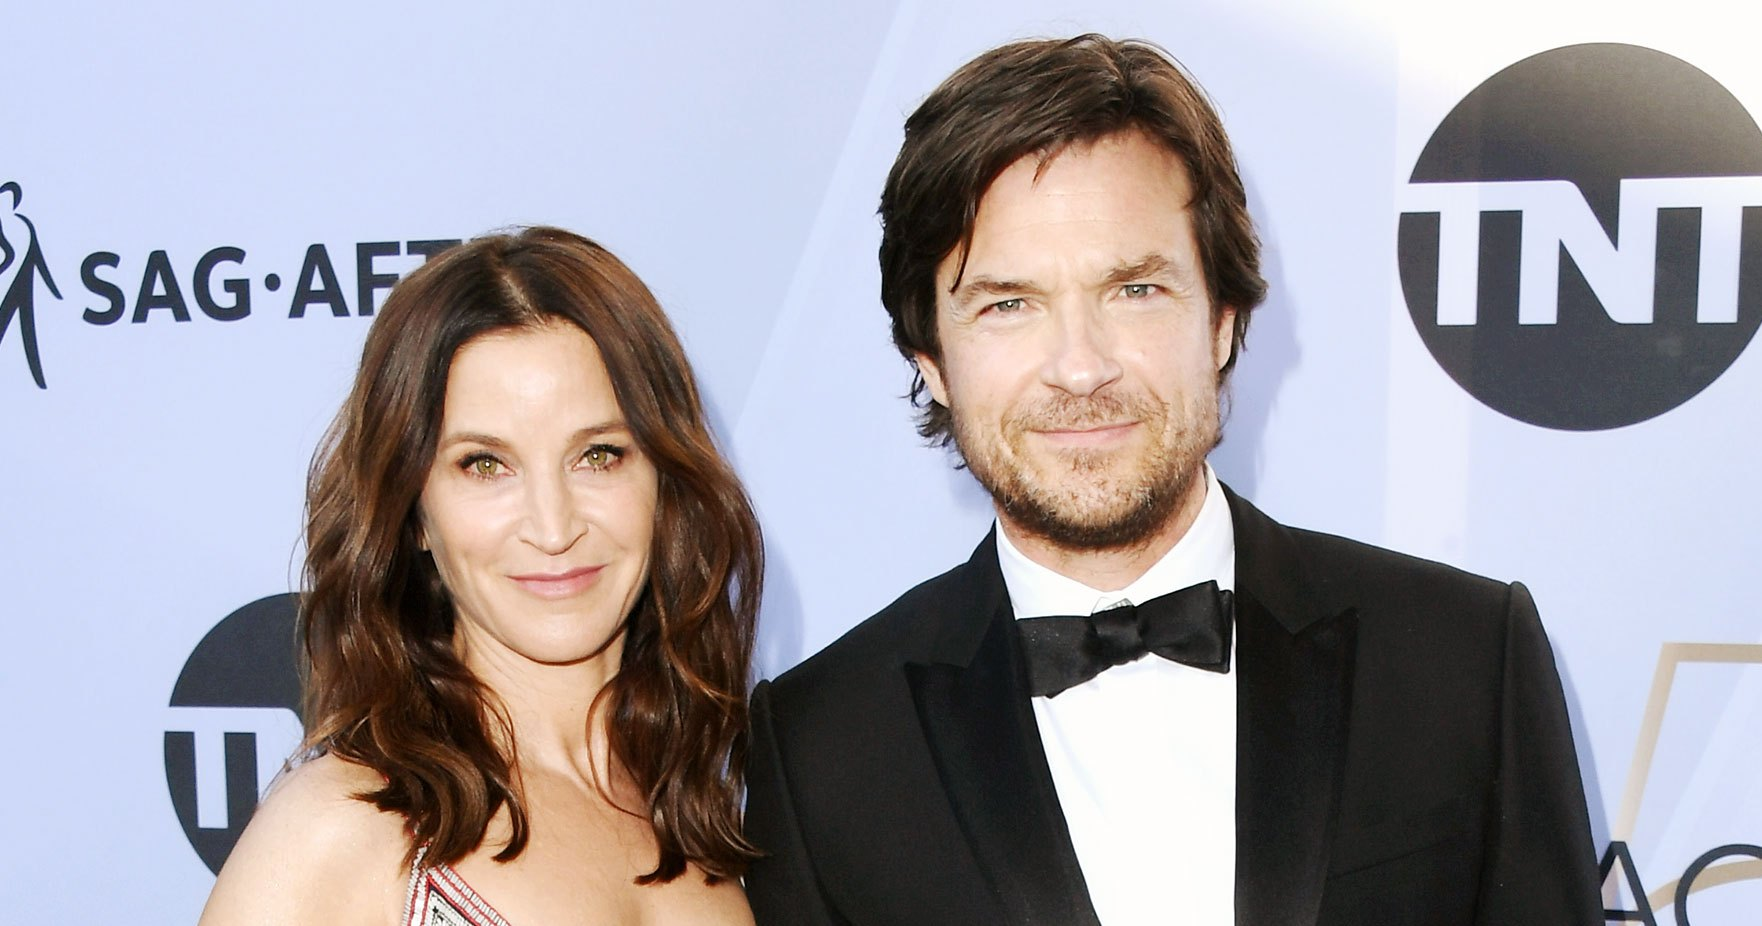 Jason Bateman Says Wife Amanda Anka Is a 'Full-Time Dad'